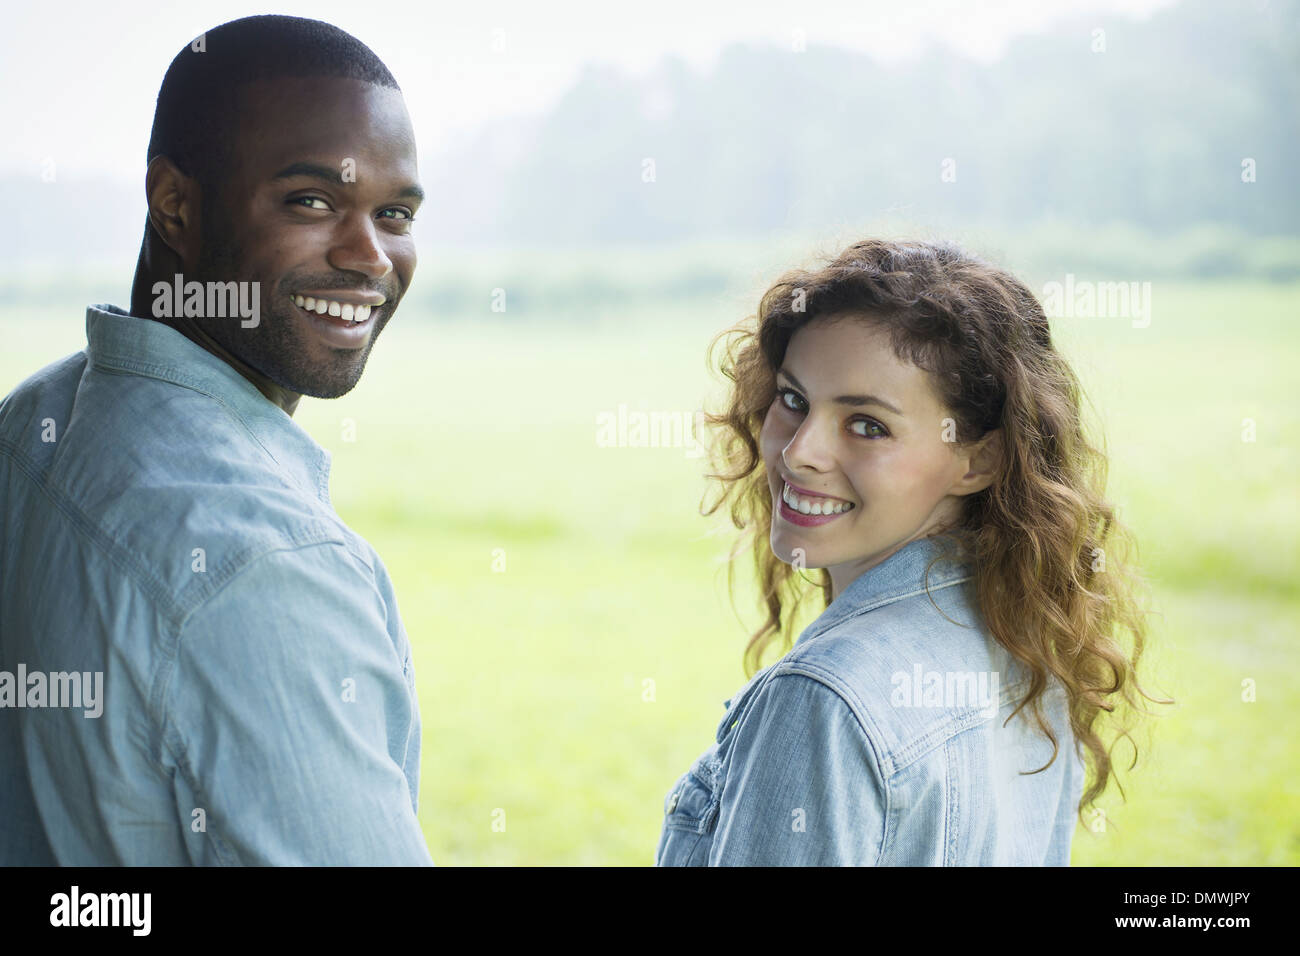 A young man and woman a couple  side by side. Looking over ir shoulders. - Stock Image